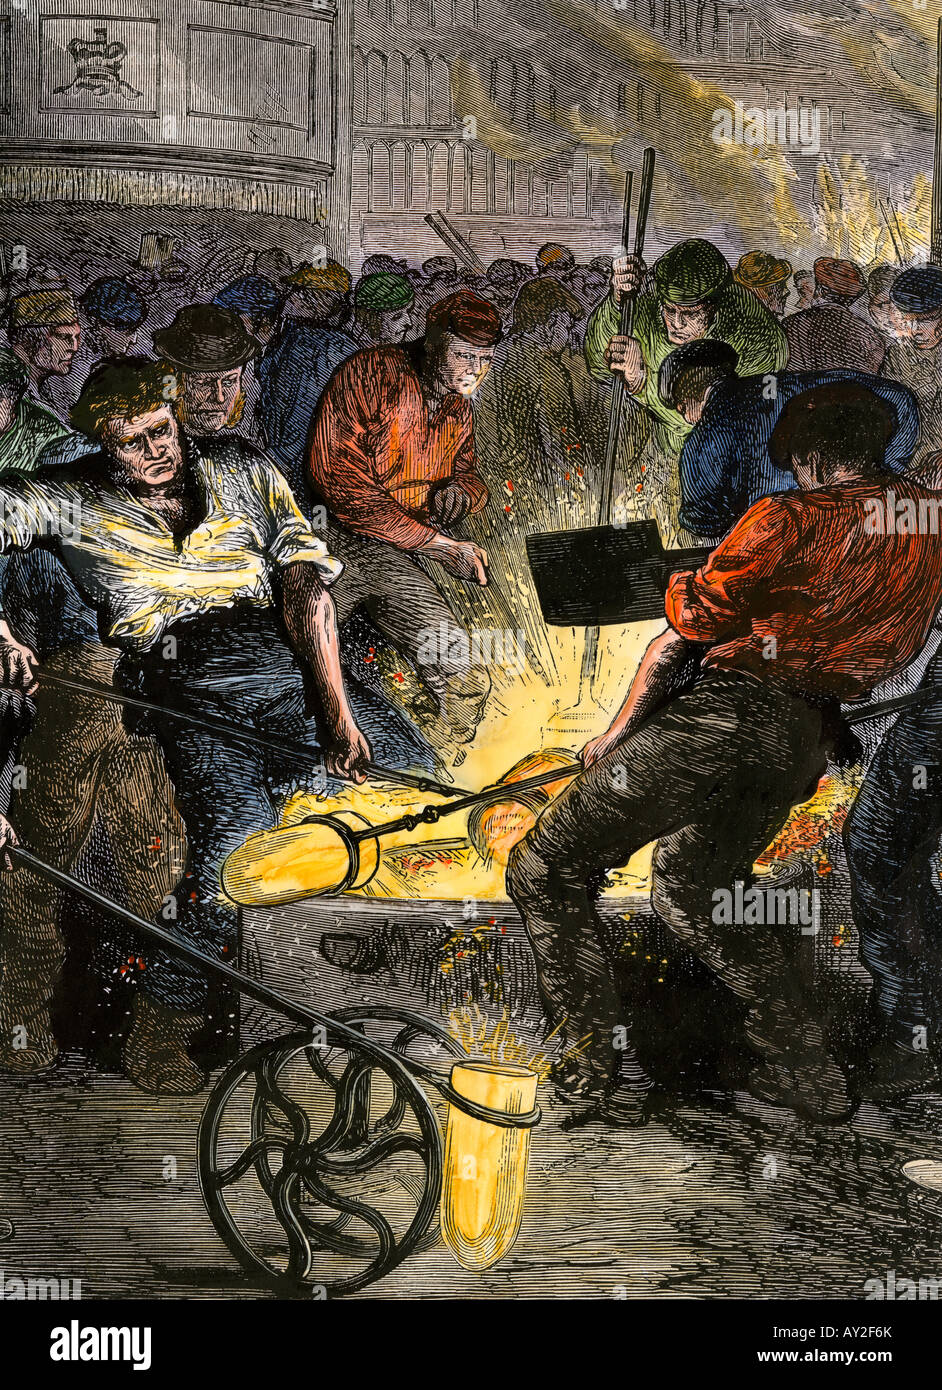 Workers manufacturing steel in England 1800s. Hand-colored woodcut Stock Photo